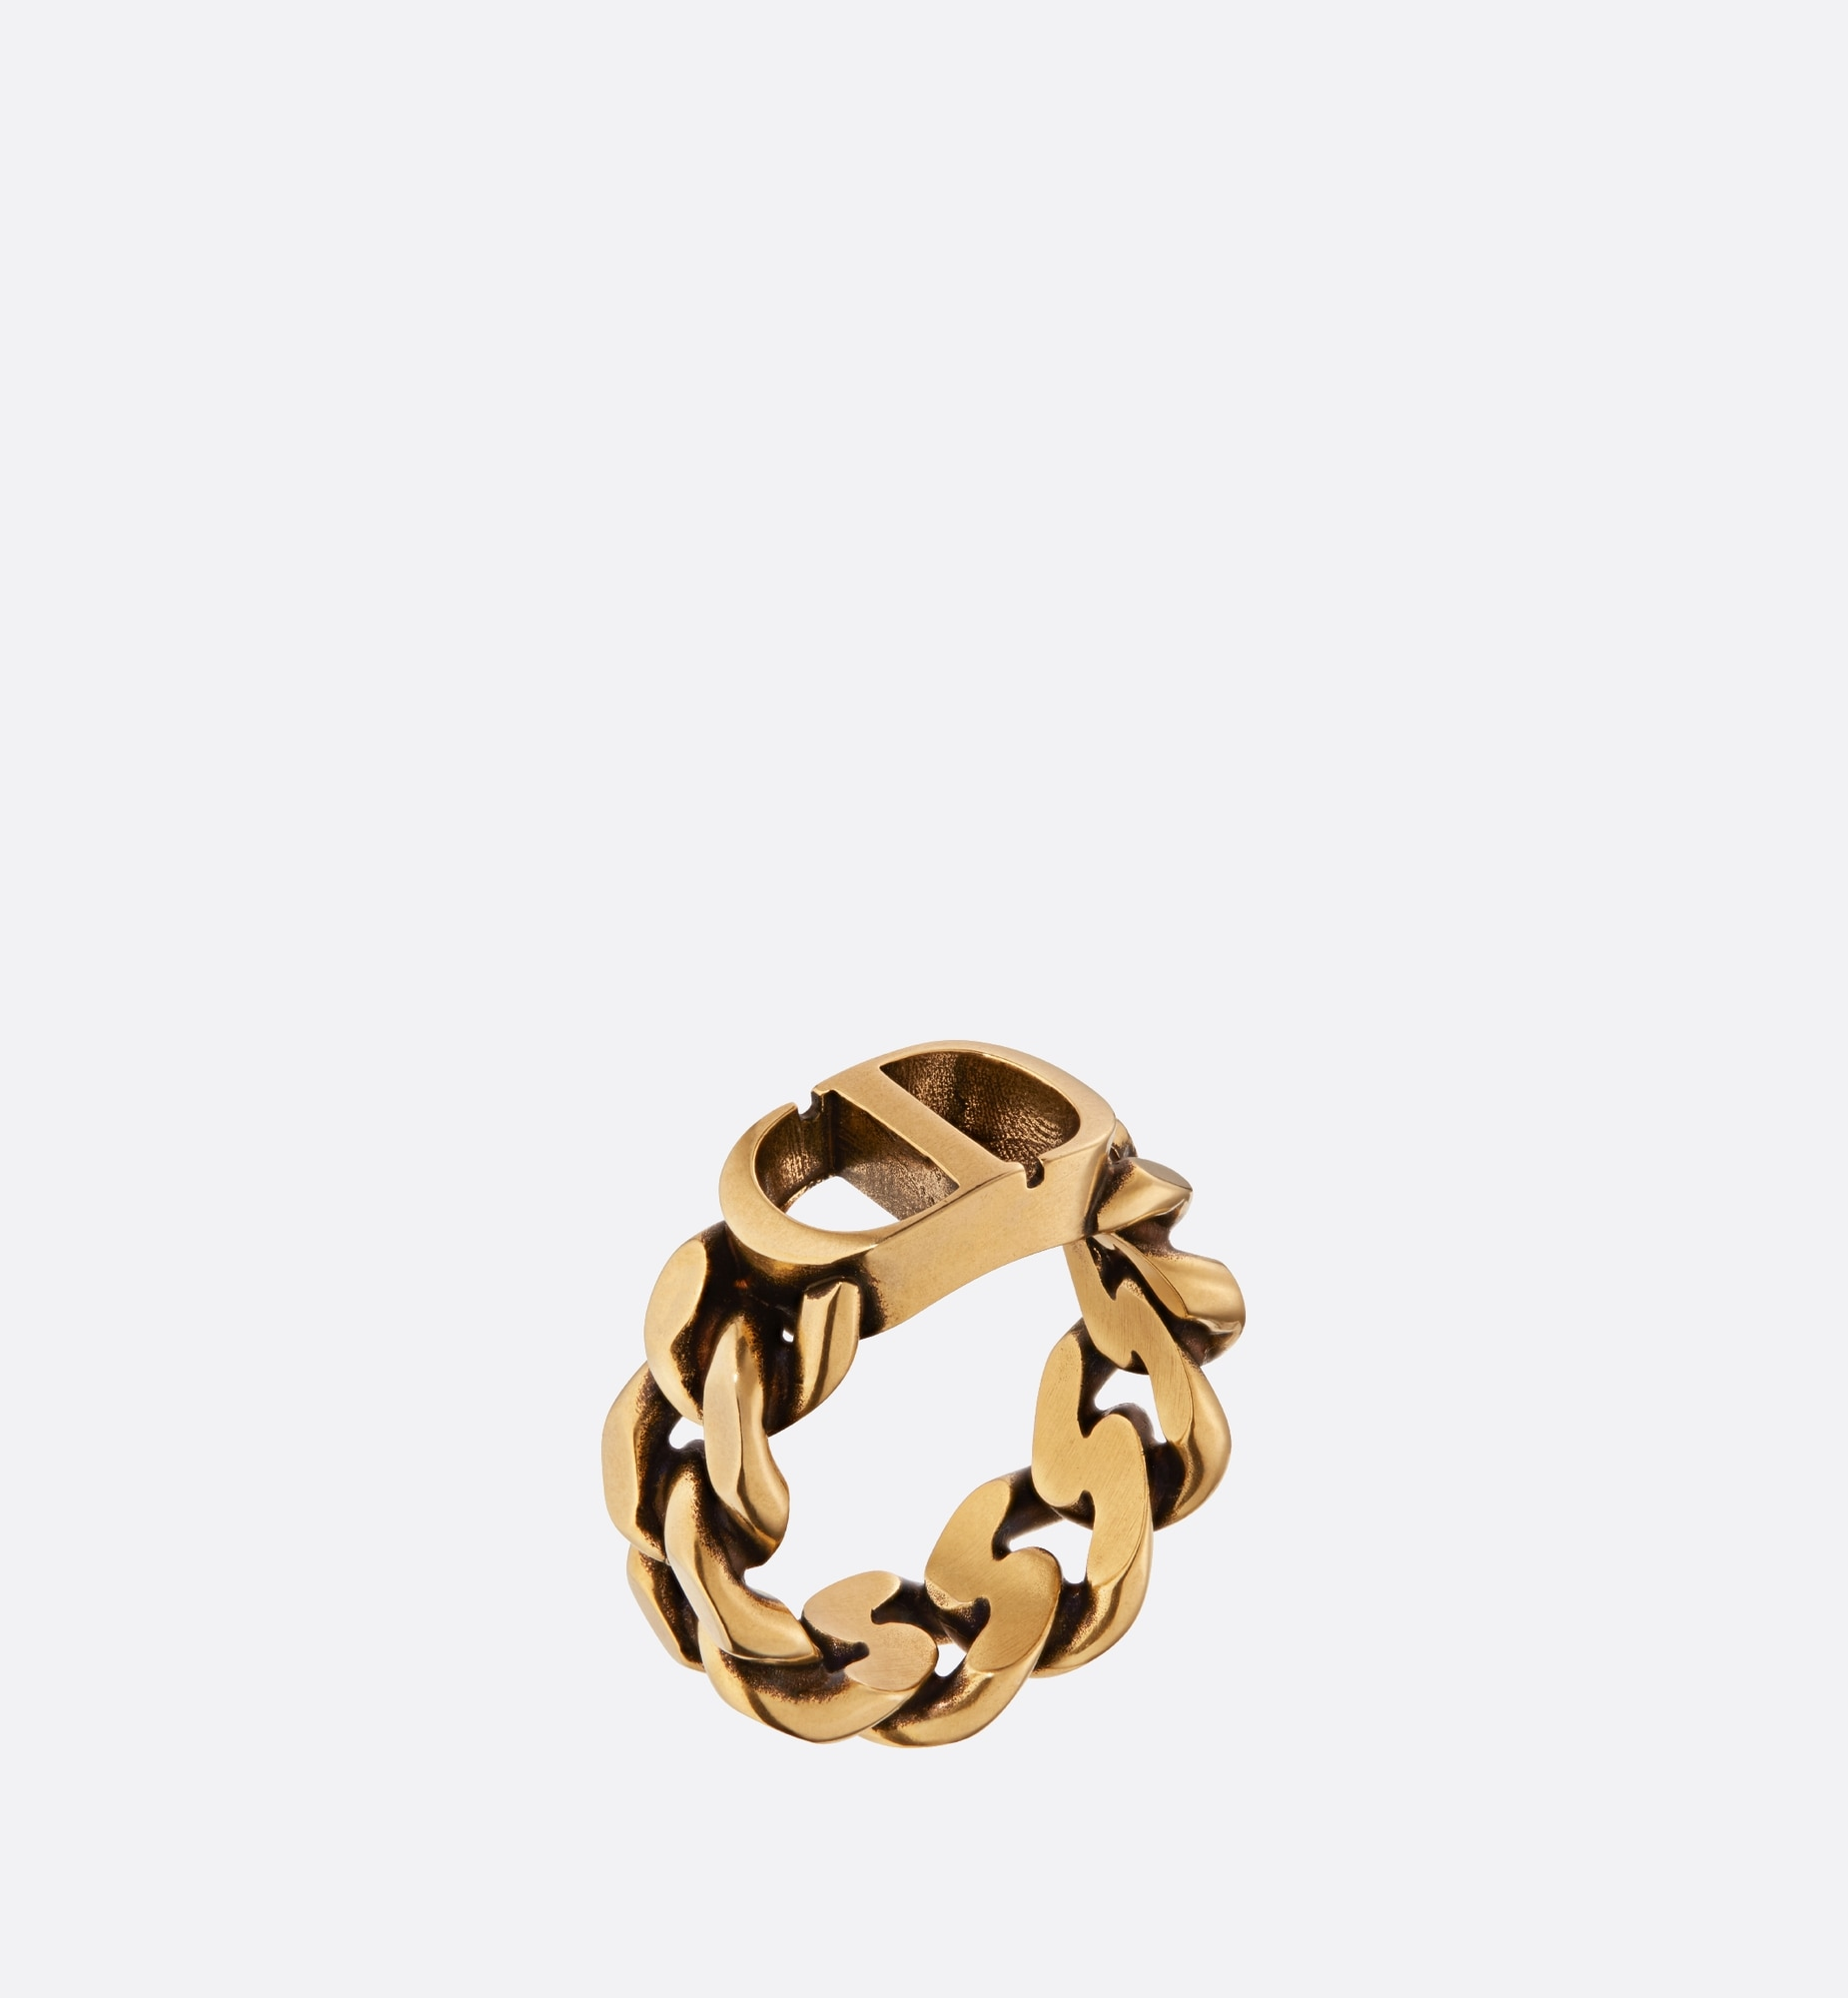 30 montaigne ring | Dior Three quarter closed view